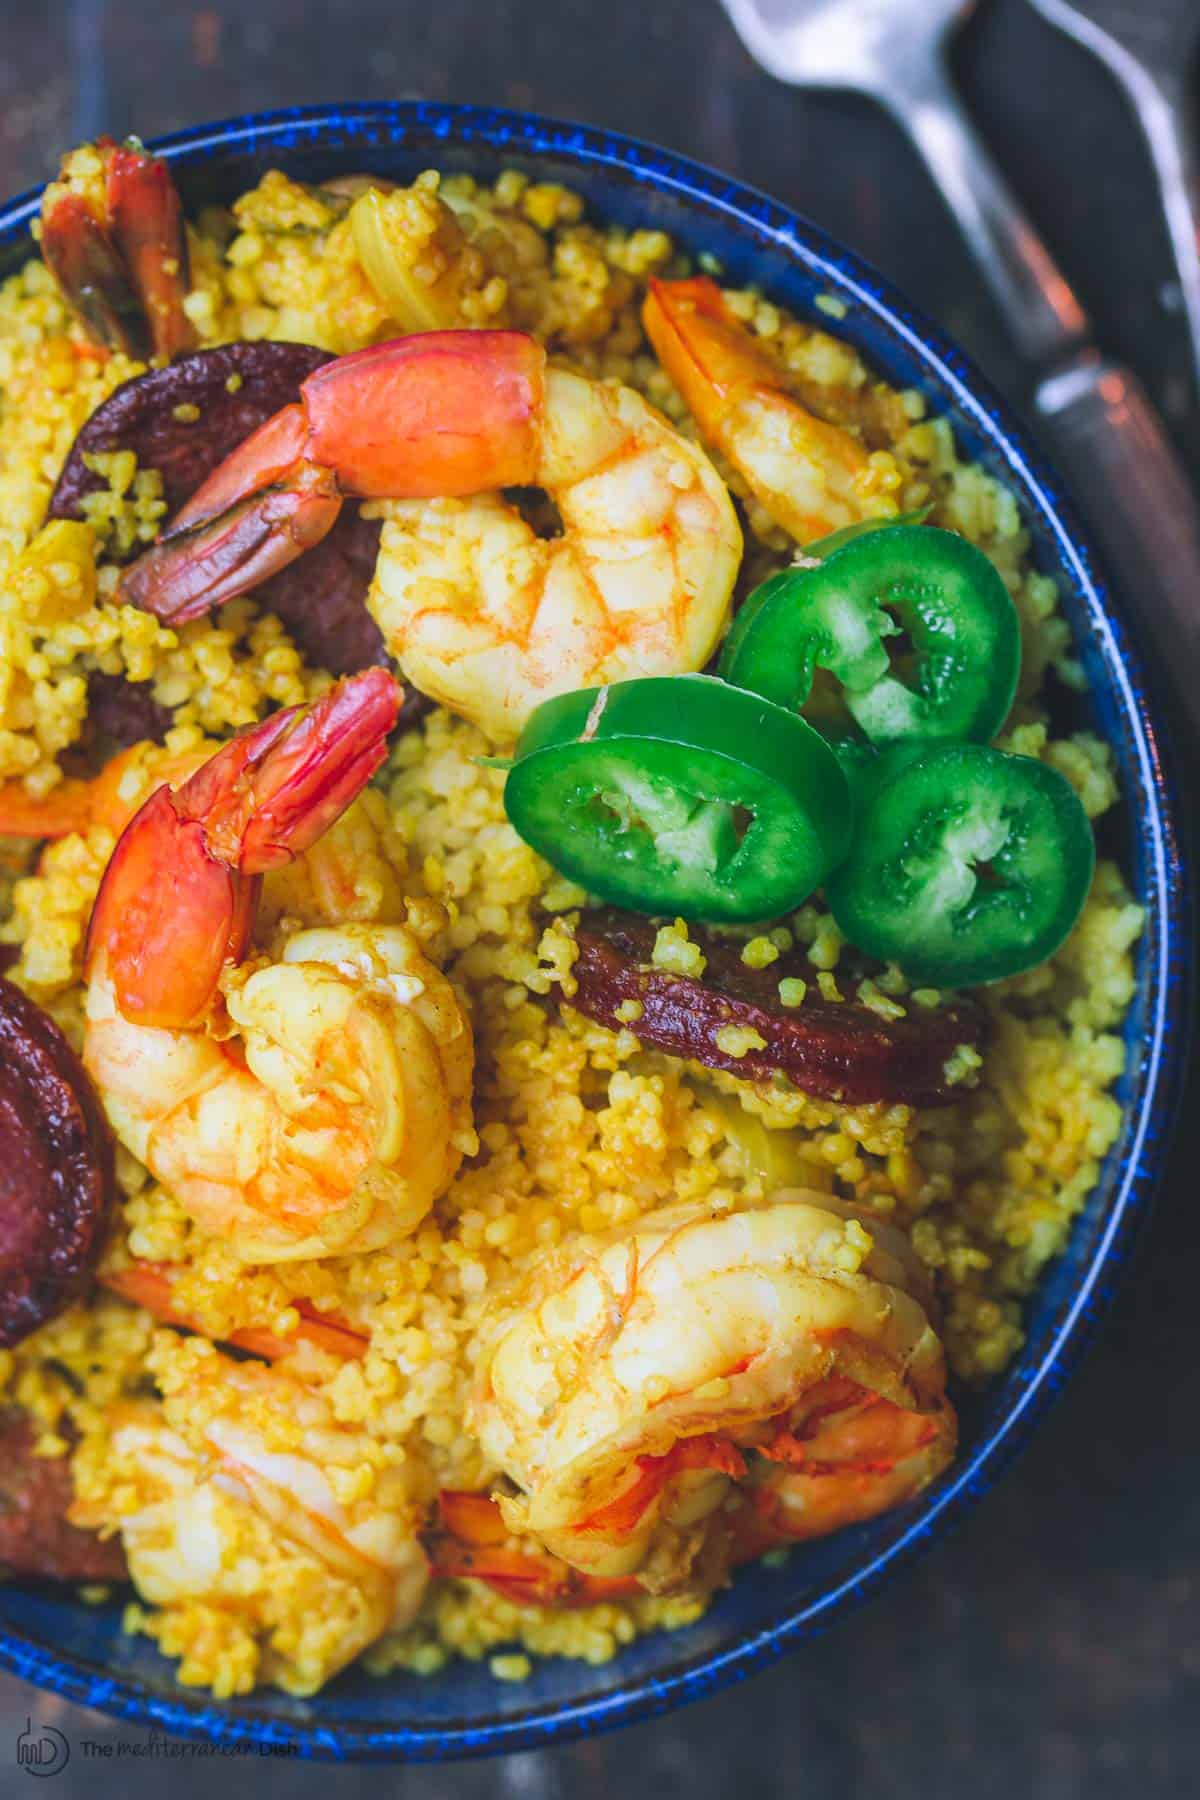 Spicy shrimp with couscous and chorizo in a small bowl